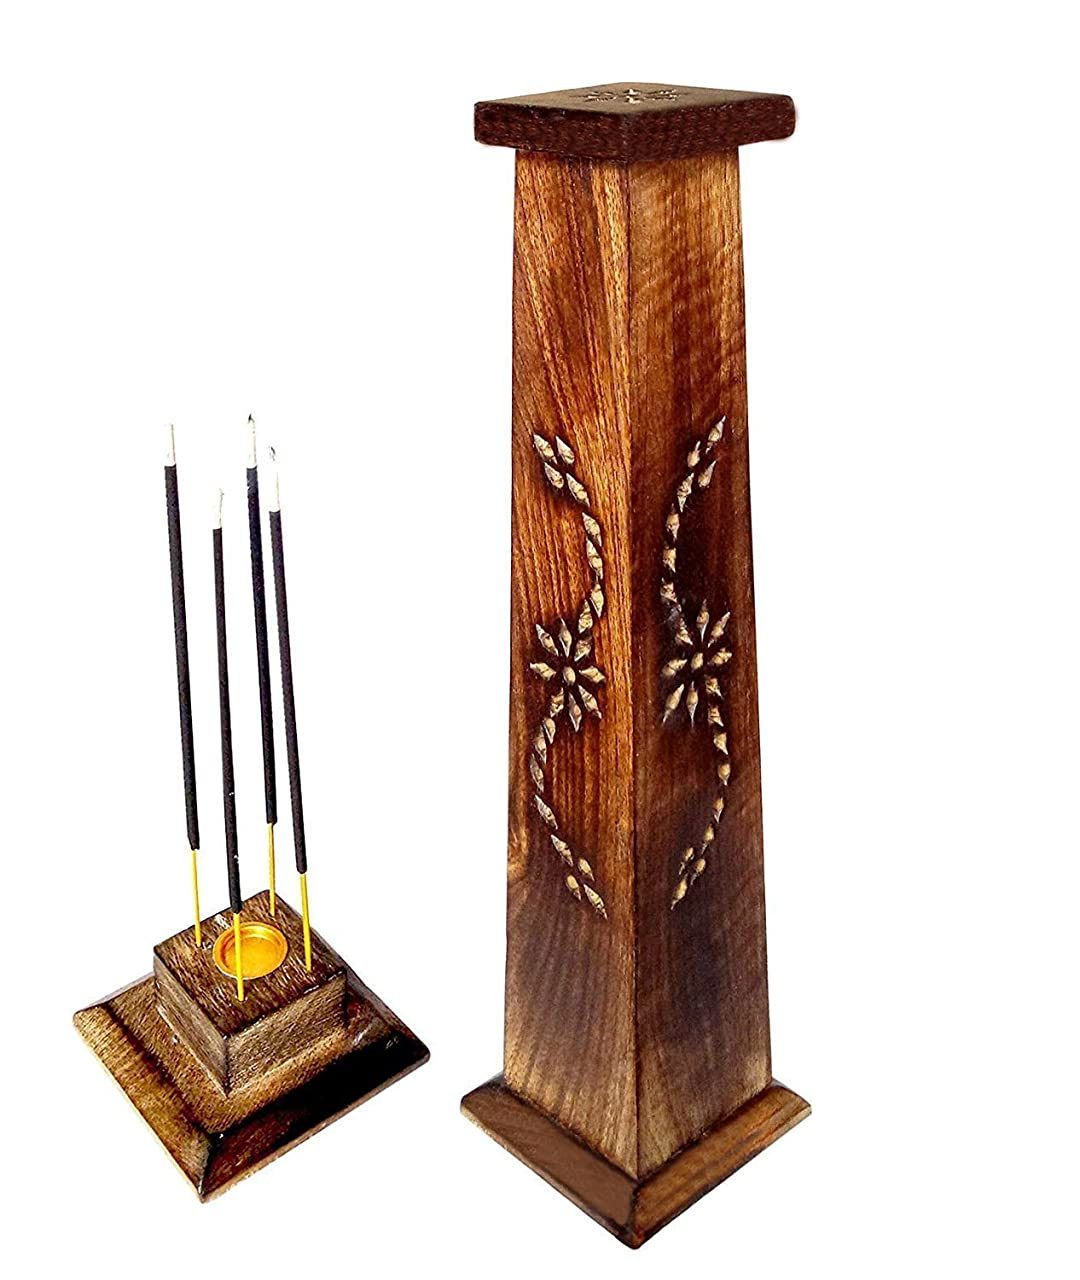 パテ甘やかすドラム木製香炉Ideal for Aromatherapy、禅、Spa、Vastu、レイキChakra Votive Candle Garden Incense Tower 12?